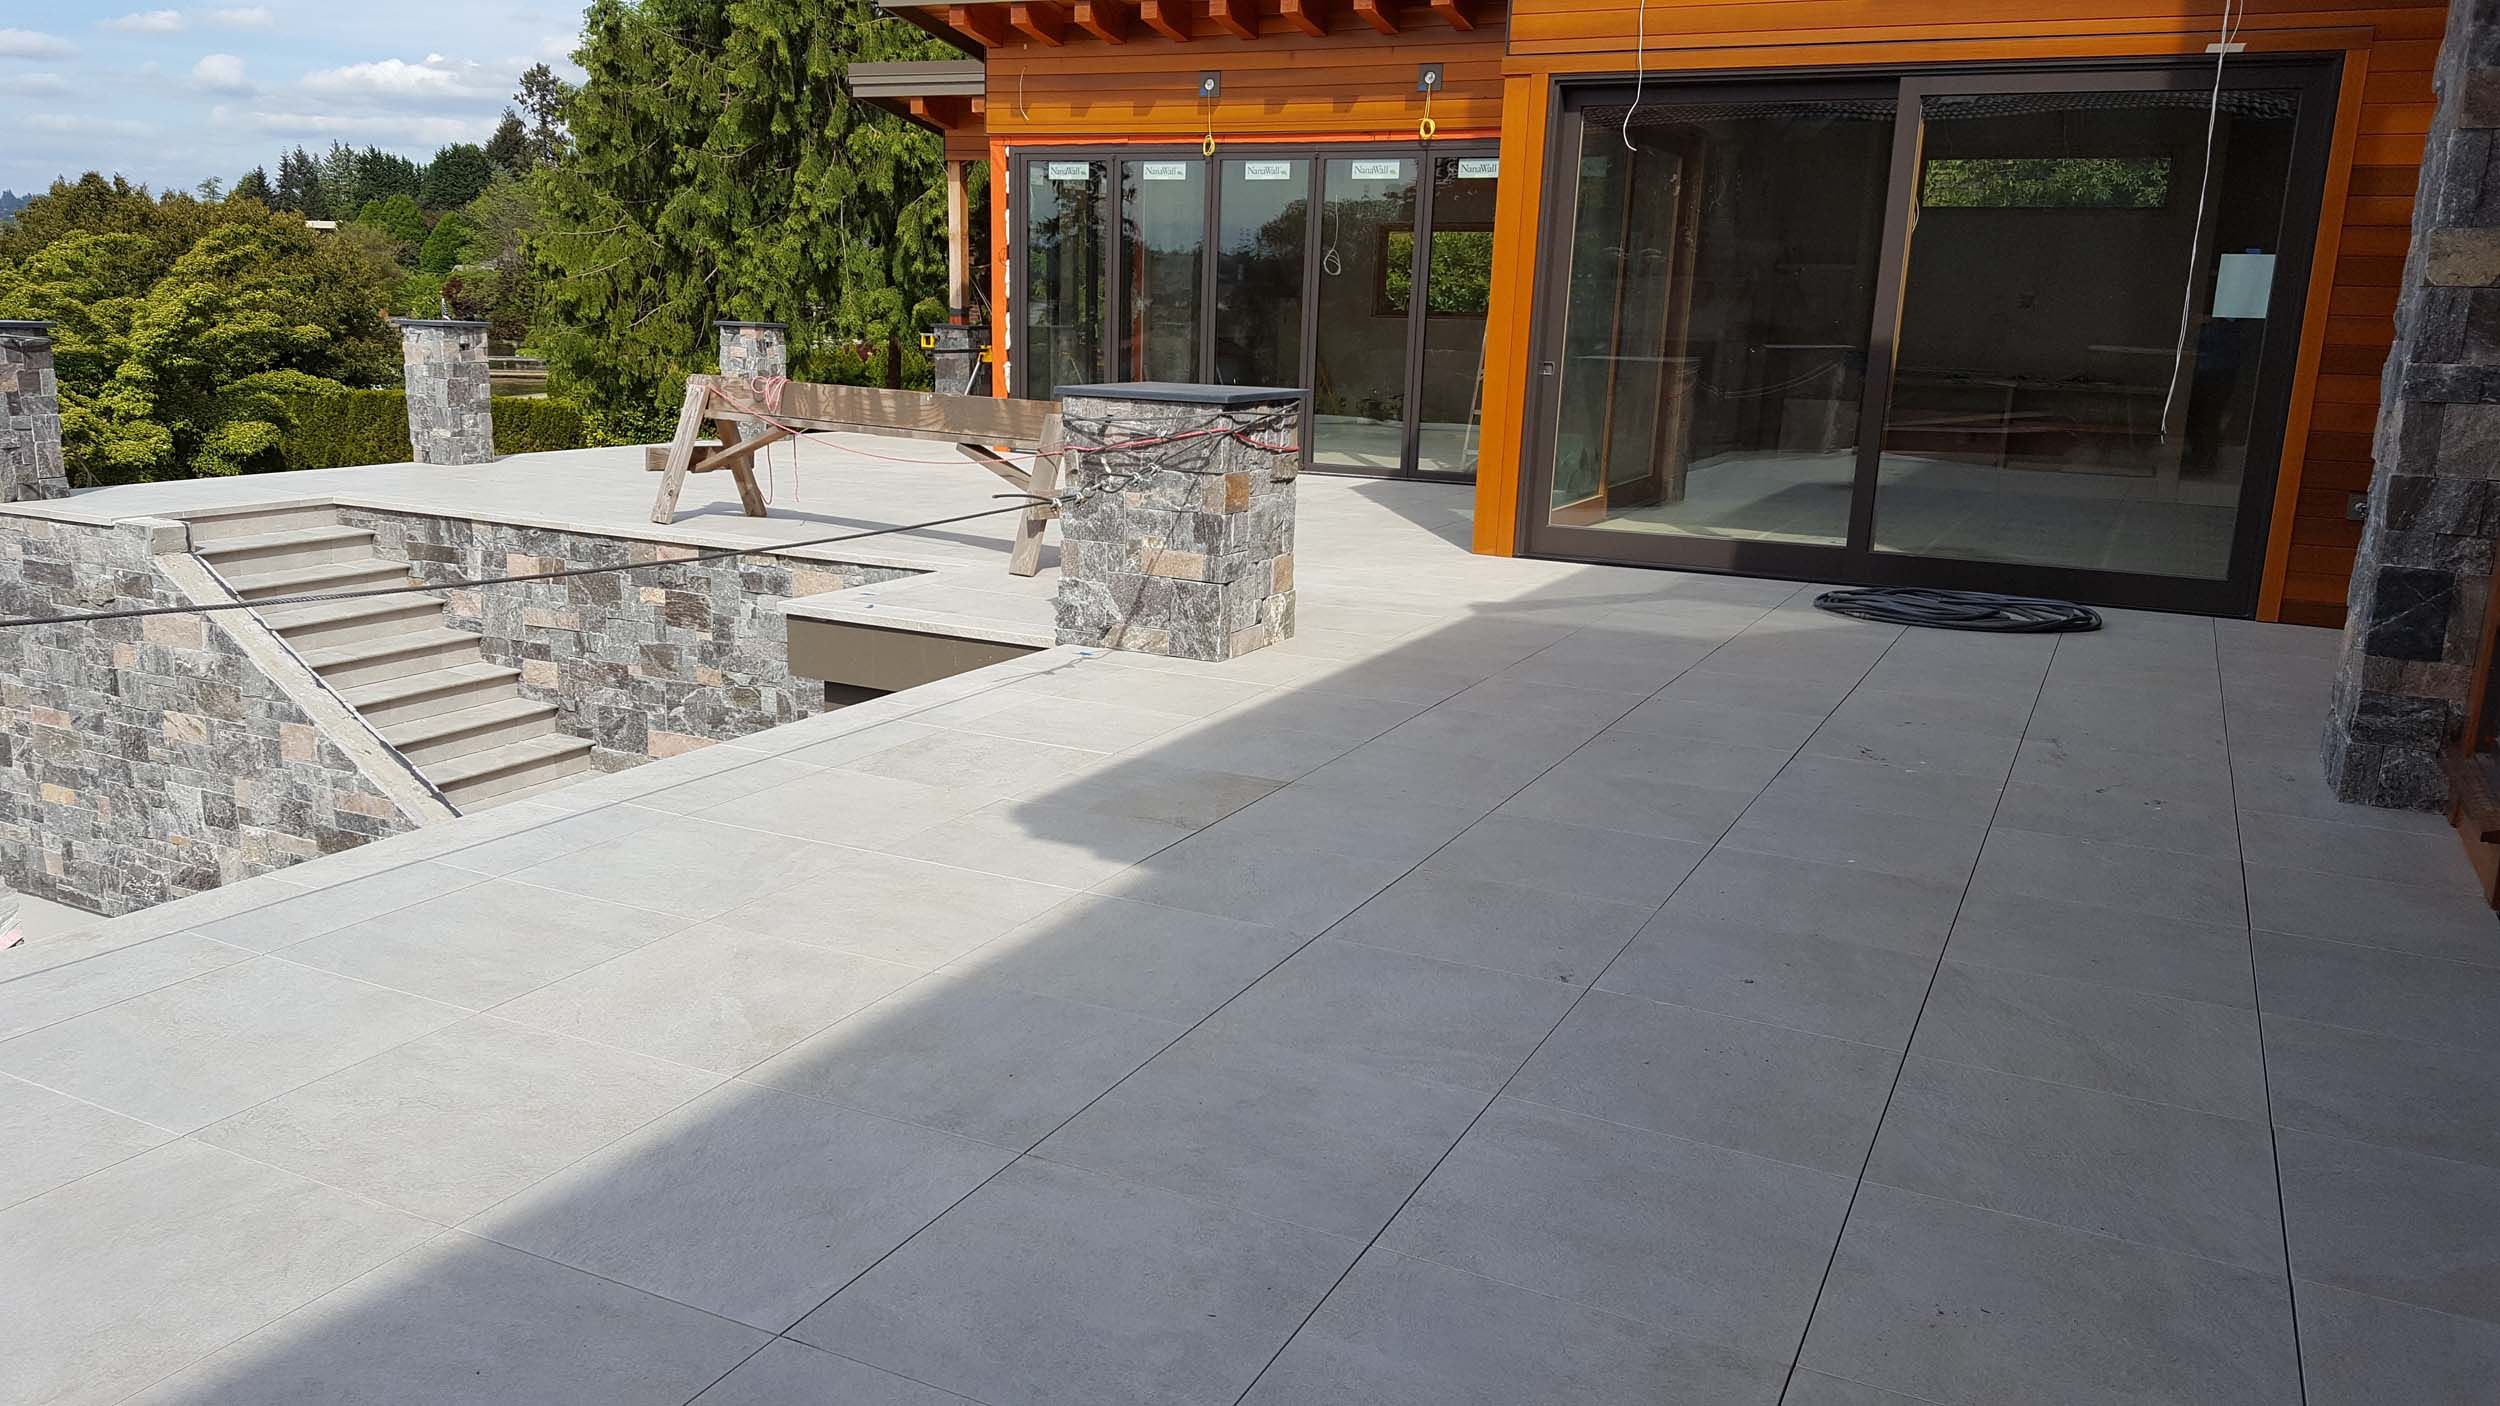 Porcelain Deck Tiles Installed On Patio In Seattle Pedestal Pavers within size 2500 X 1406